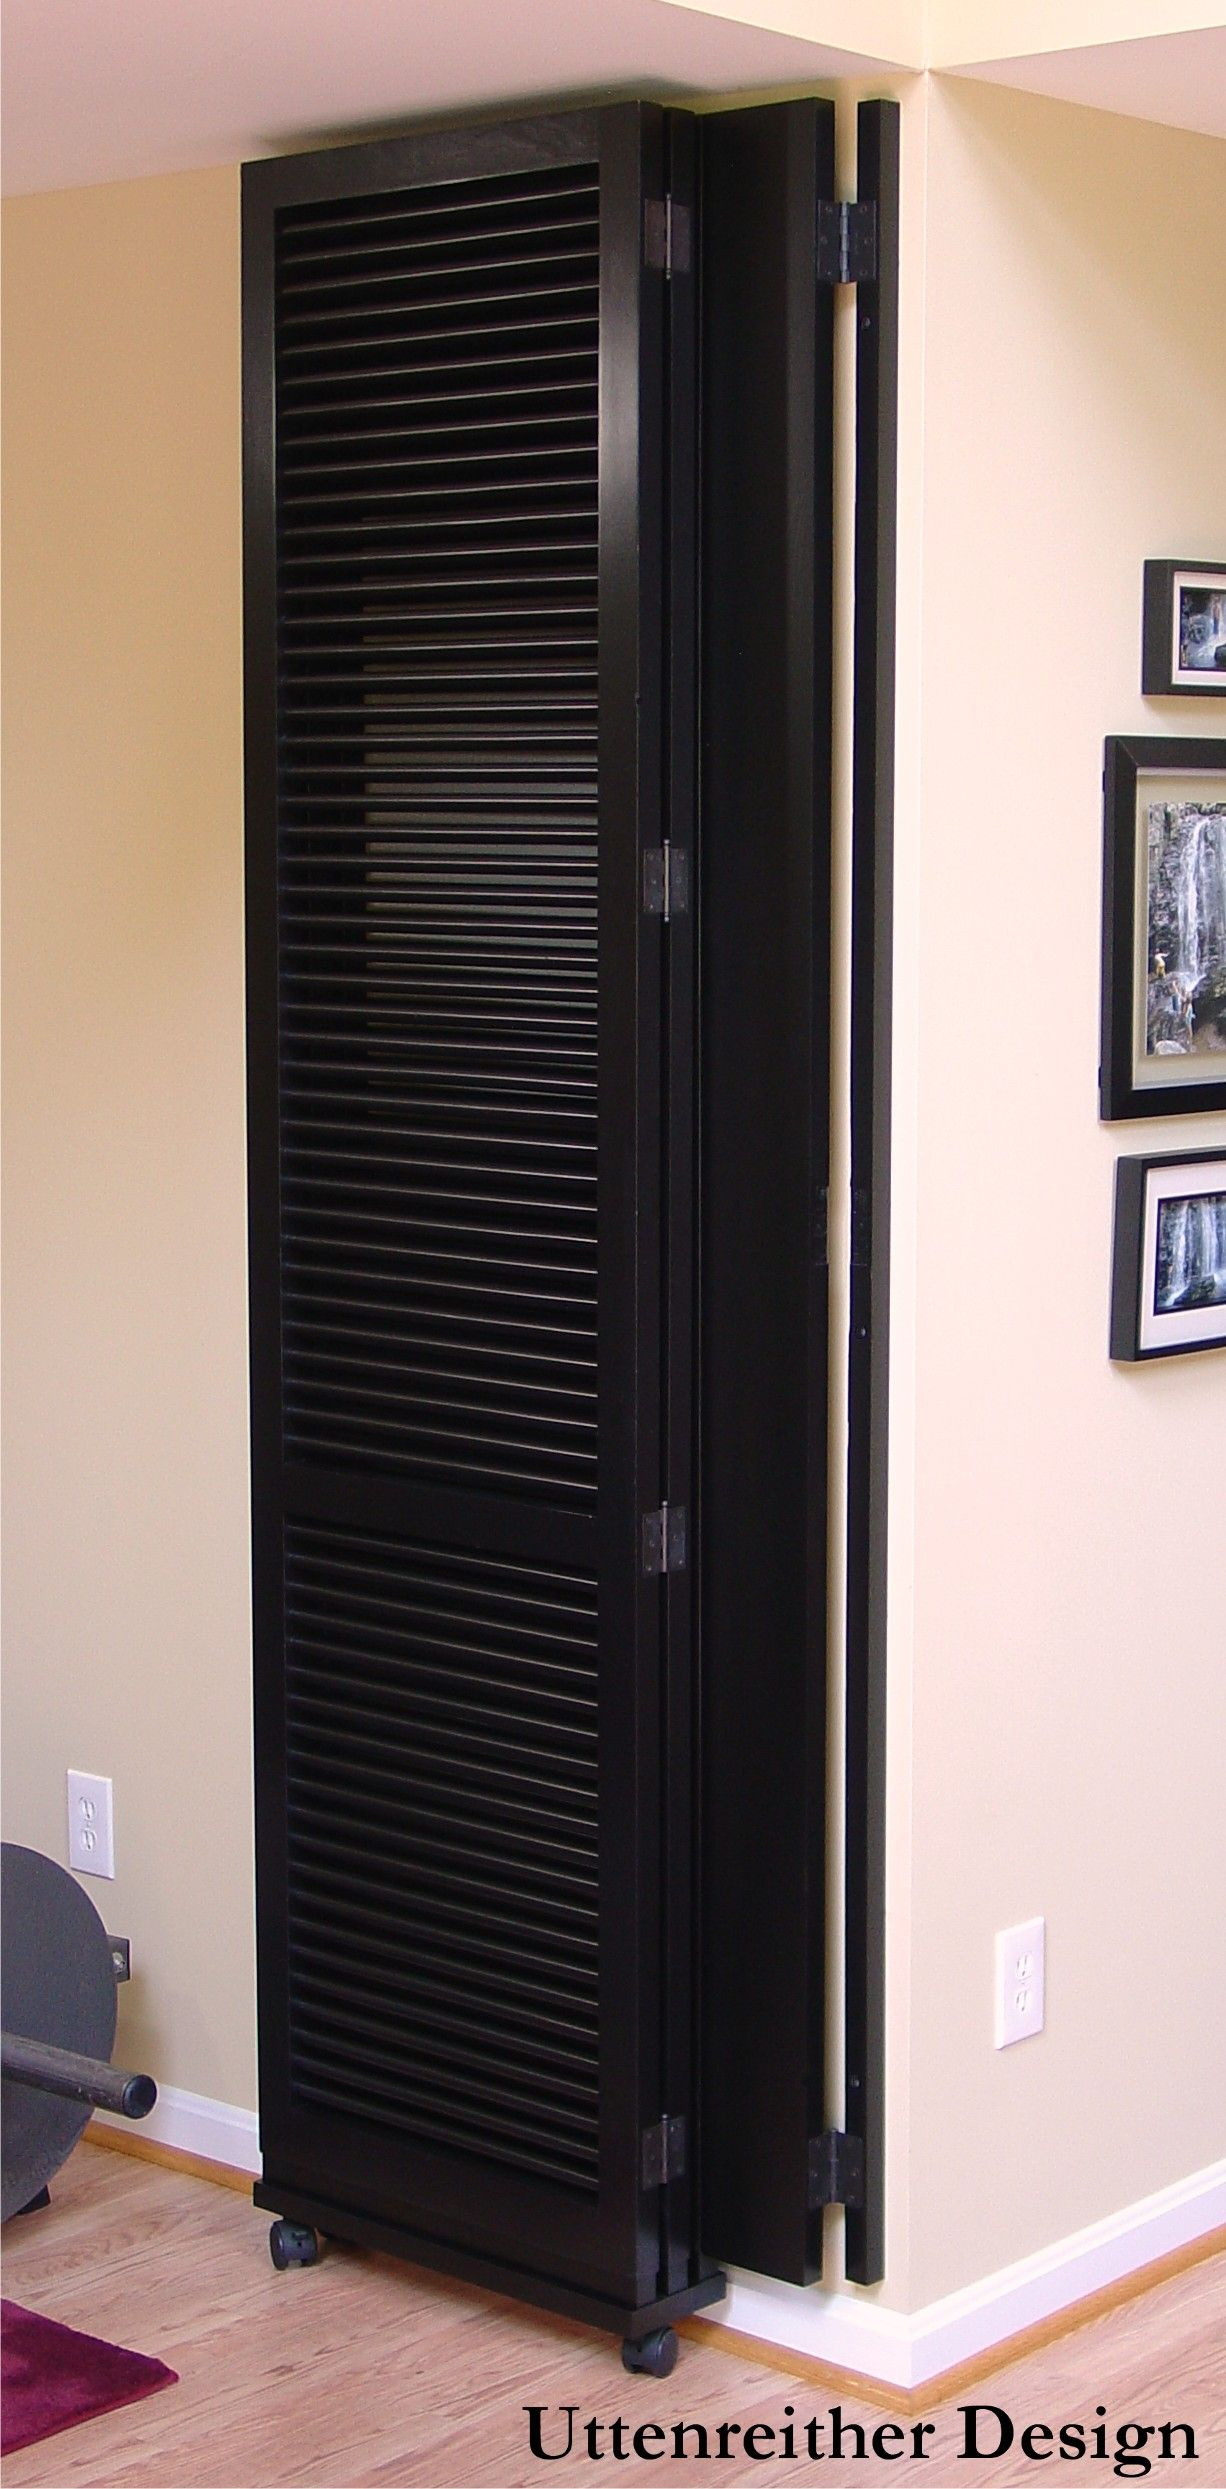 Room Divider Partition Ideas Room Divider How To The Room Divider Folds Neatly To The